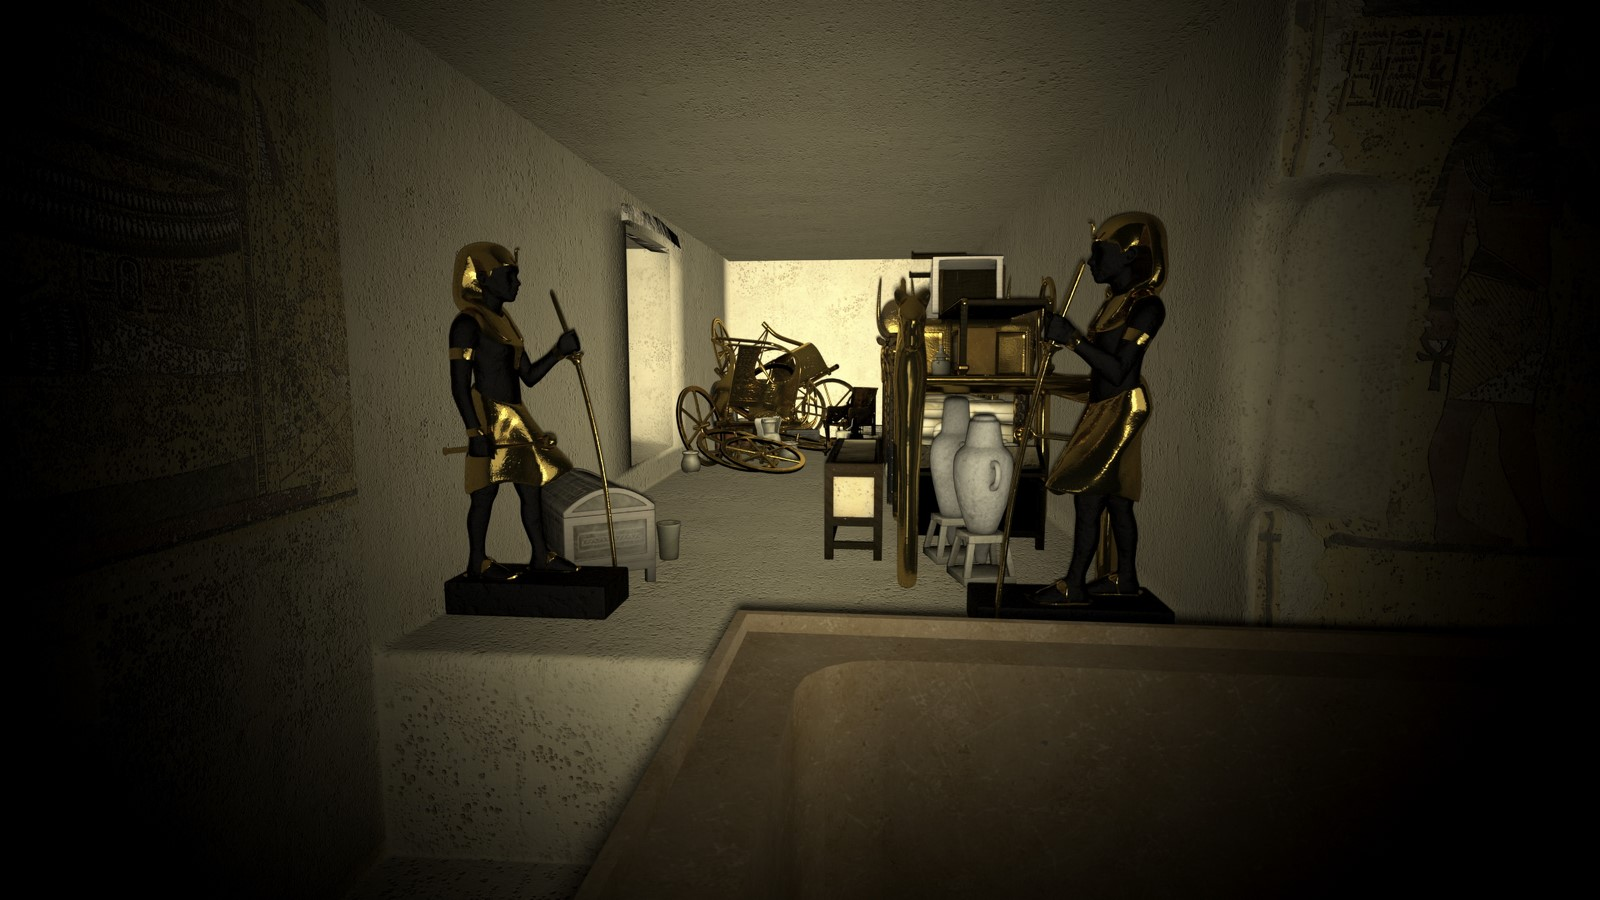 Youtube for Architects Tutankhamun's Treasures- Lost Treasures of Egypt by National Geographic - Sheet3